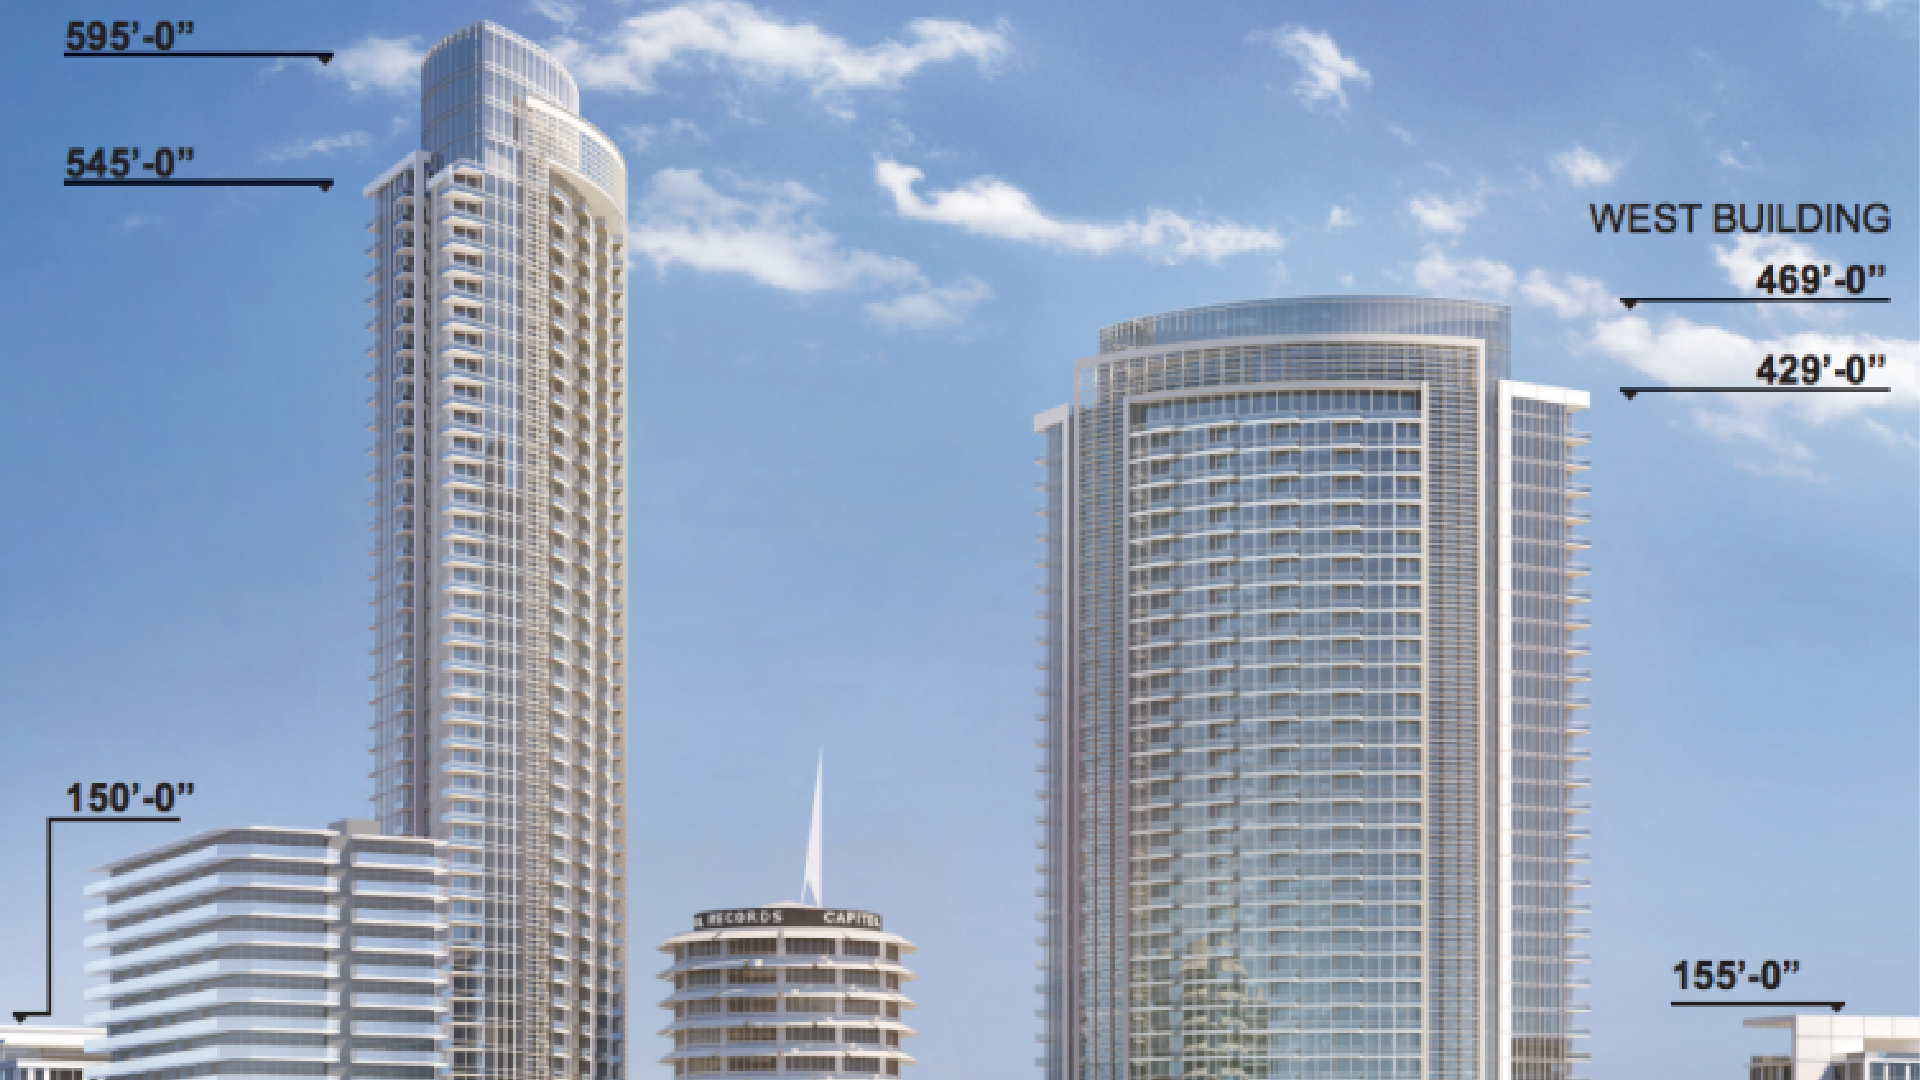 The proposed Hollywood Center project includes 46- and 35-story buildings flanking the Capitol Records tower and two 11-story residential buildings for low-income senior residents.(Hollywood Center Project Environmental Impact Report via Los Angeles Times)